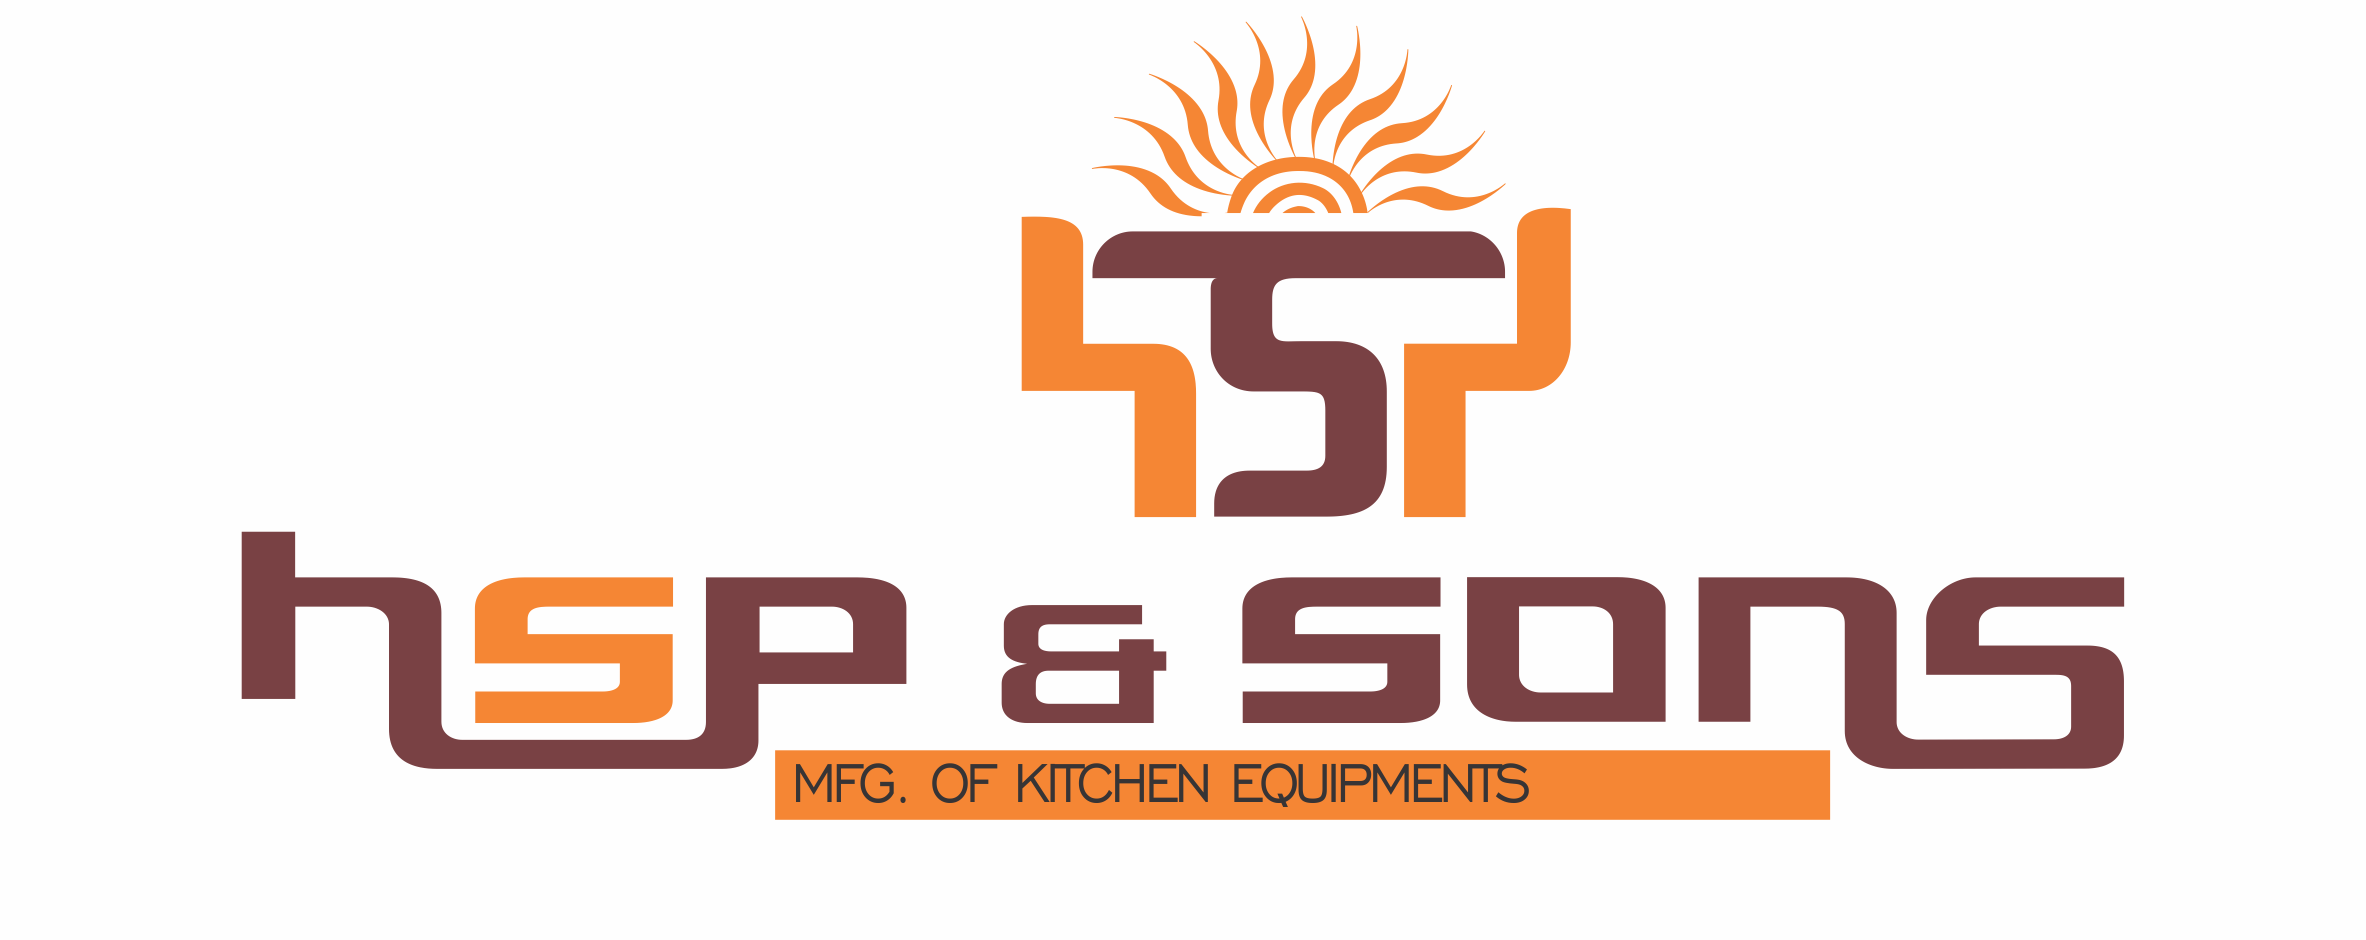 HSP Kitchen Equipments